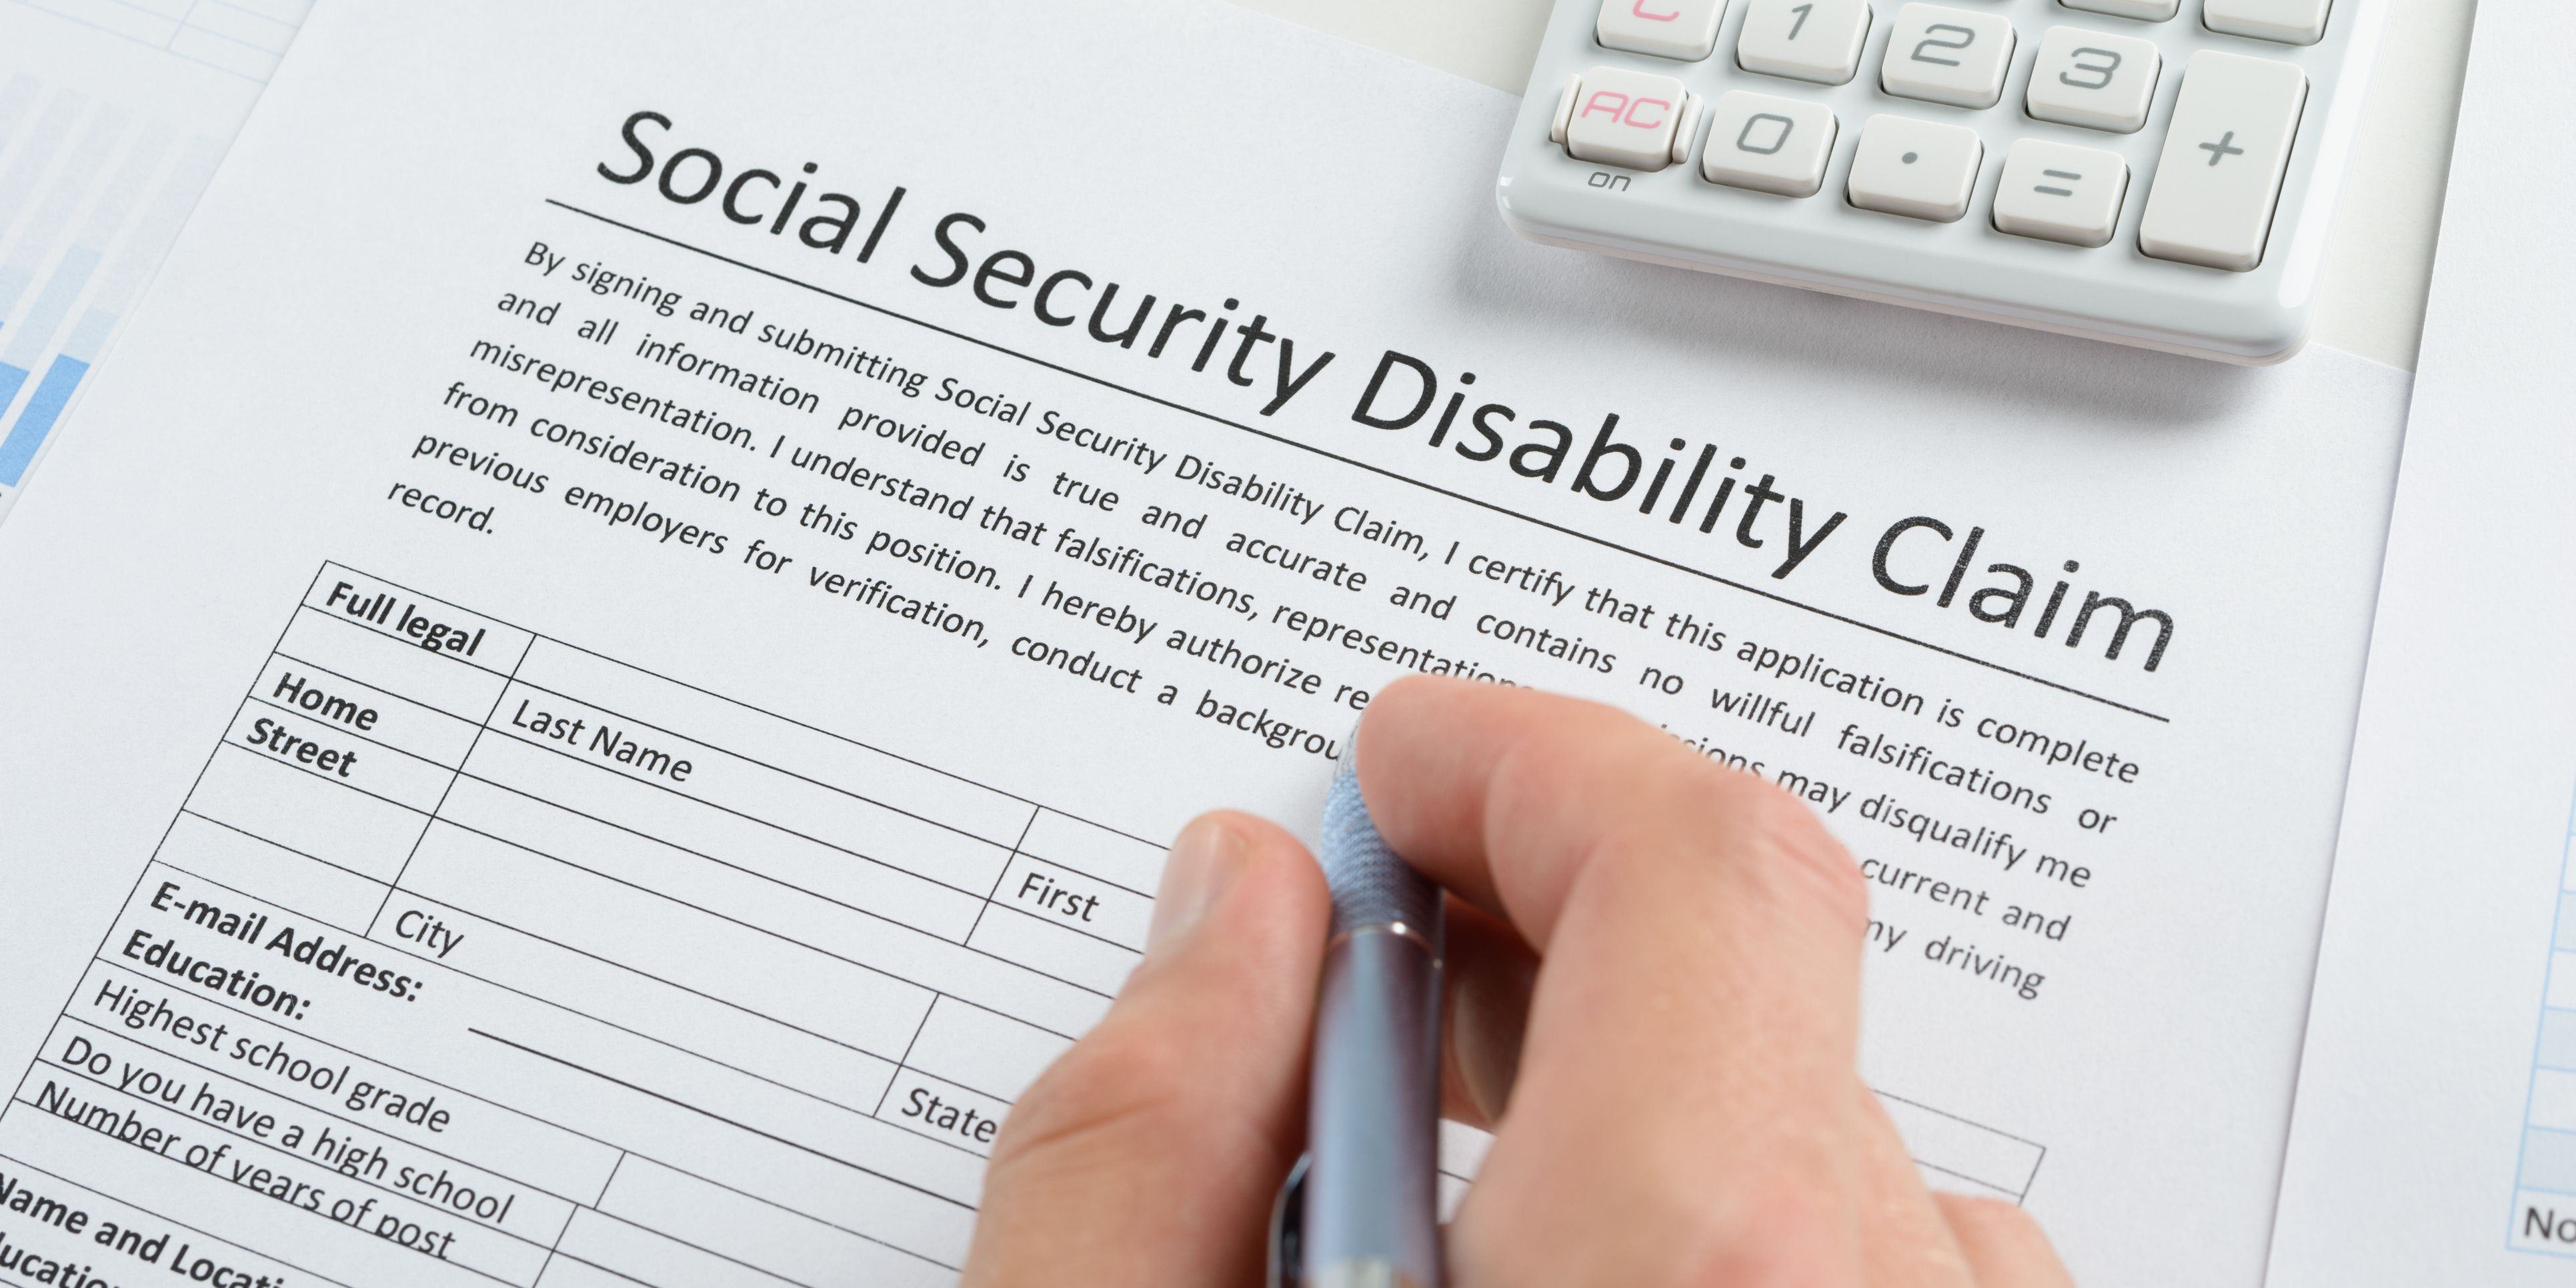 When I Got The Letter About My Social Security Disability